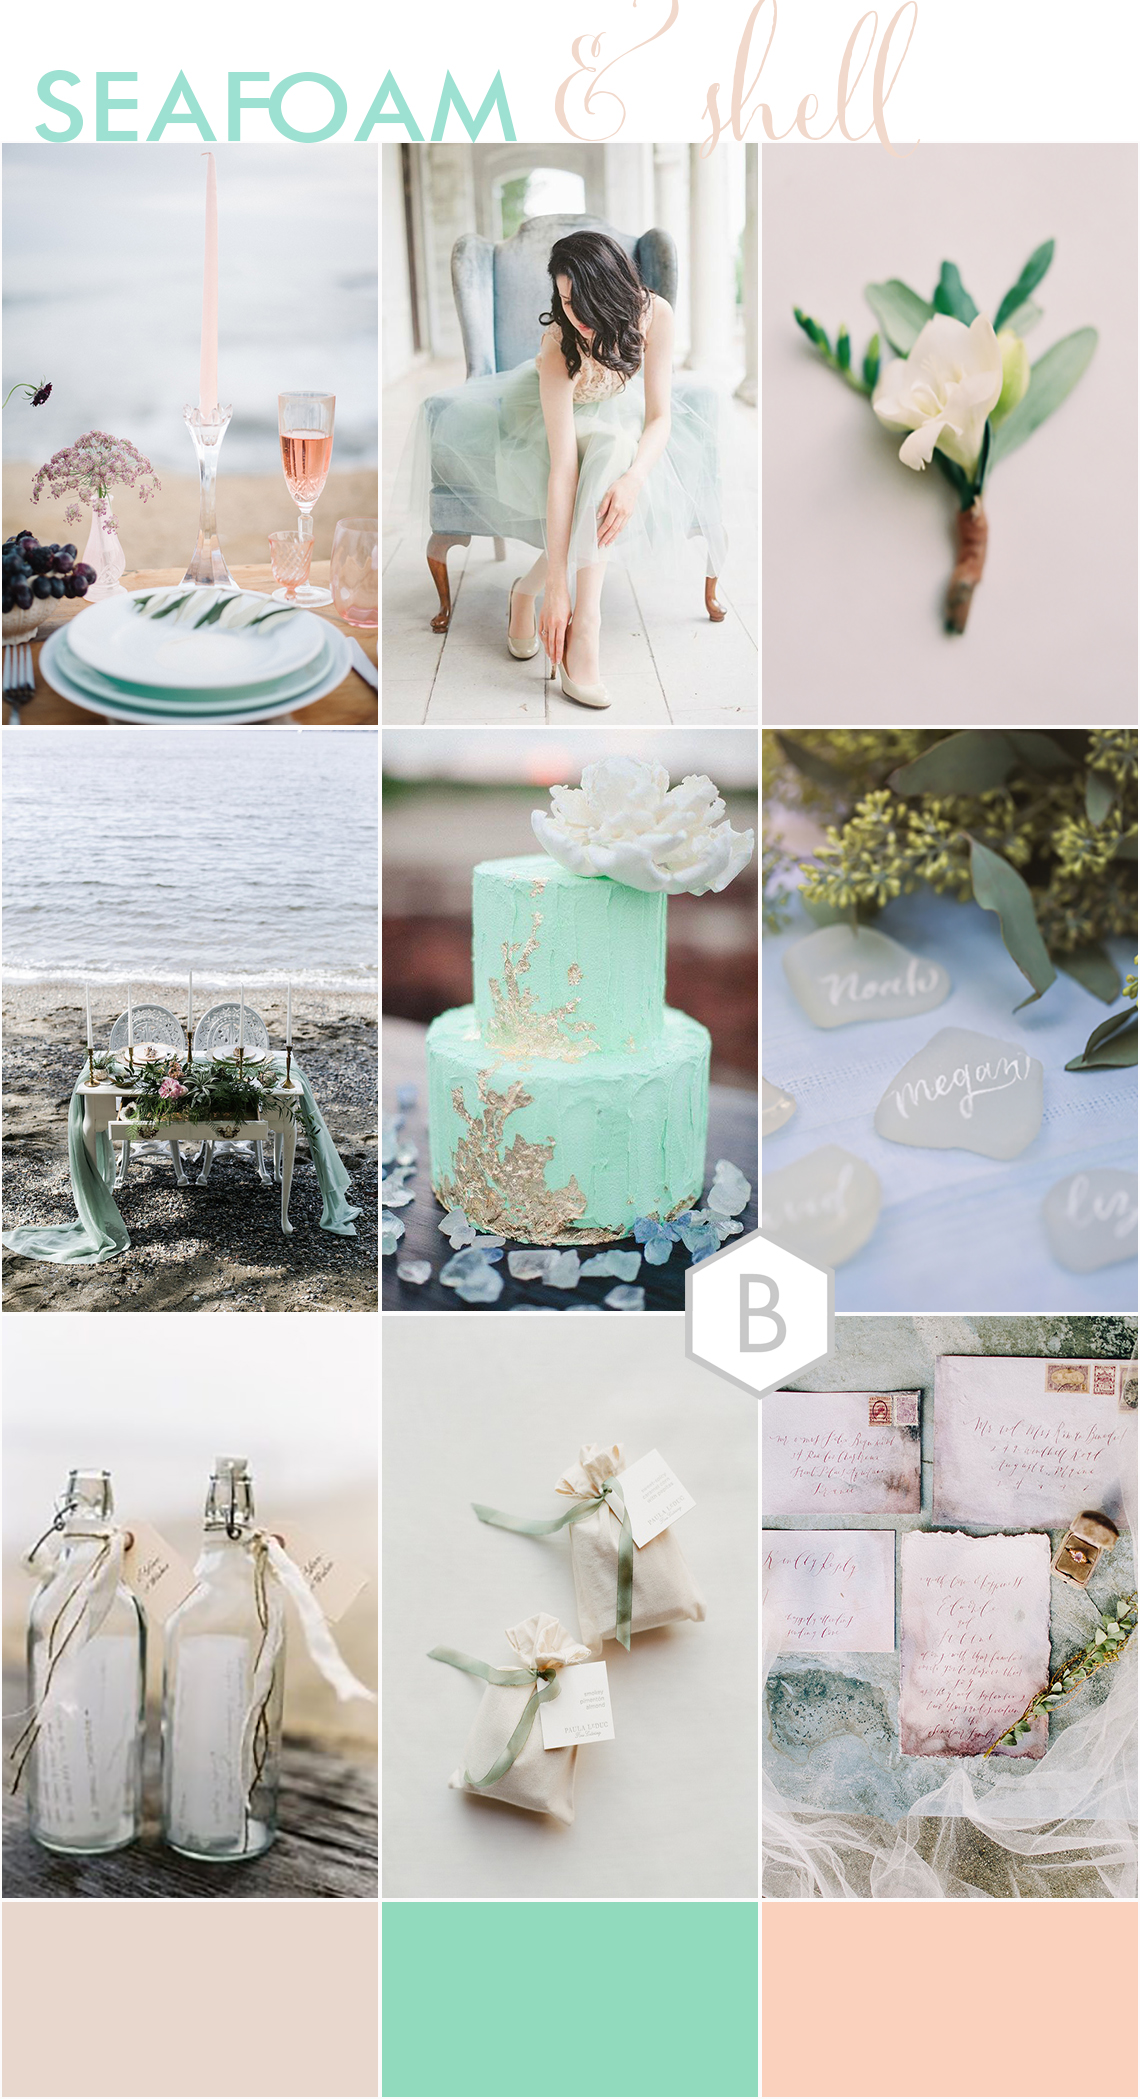 bloved-wedding-blog-coastal-mint-blush-wedding-inspiration